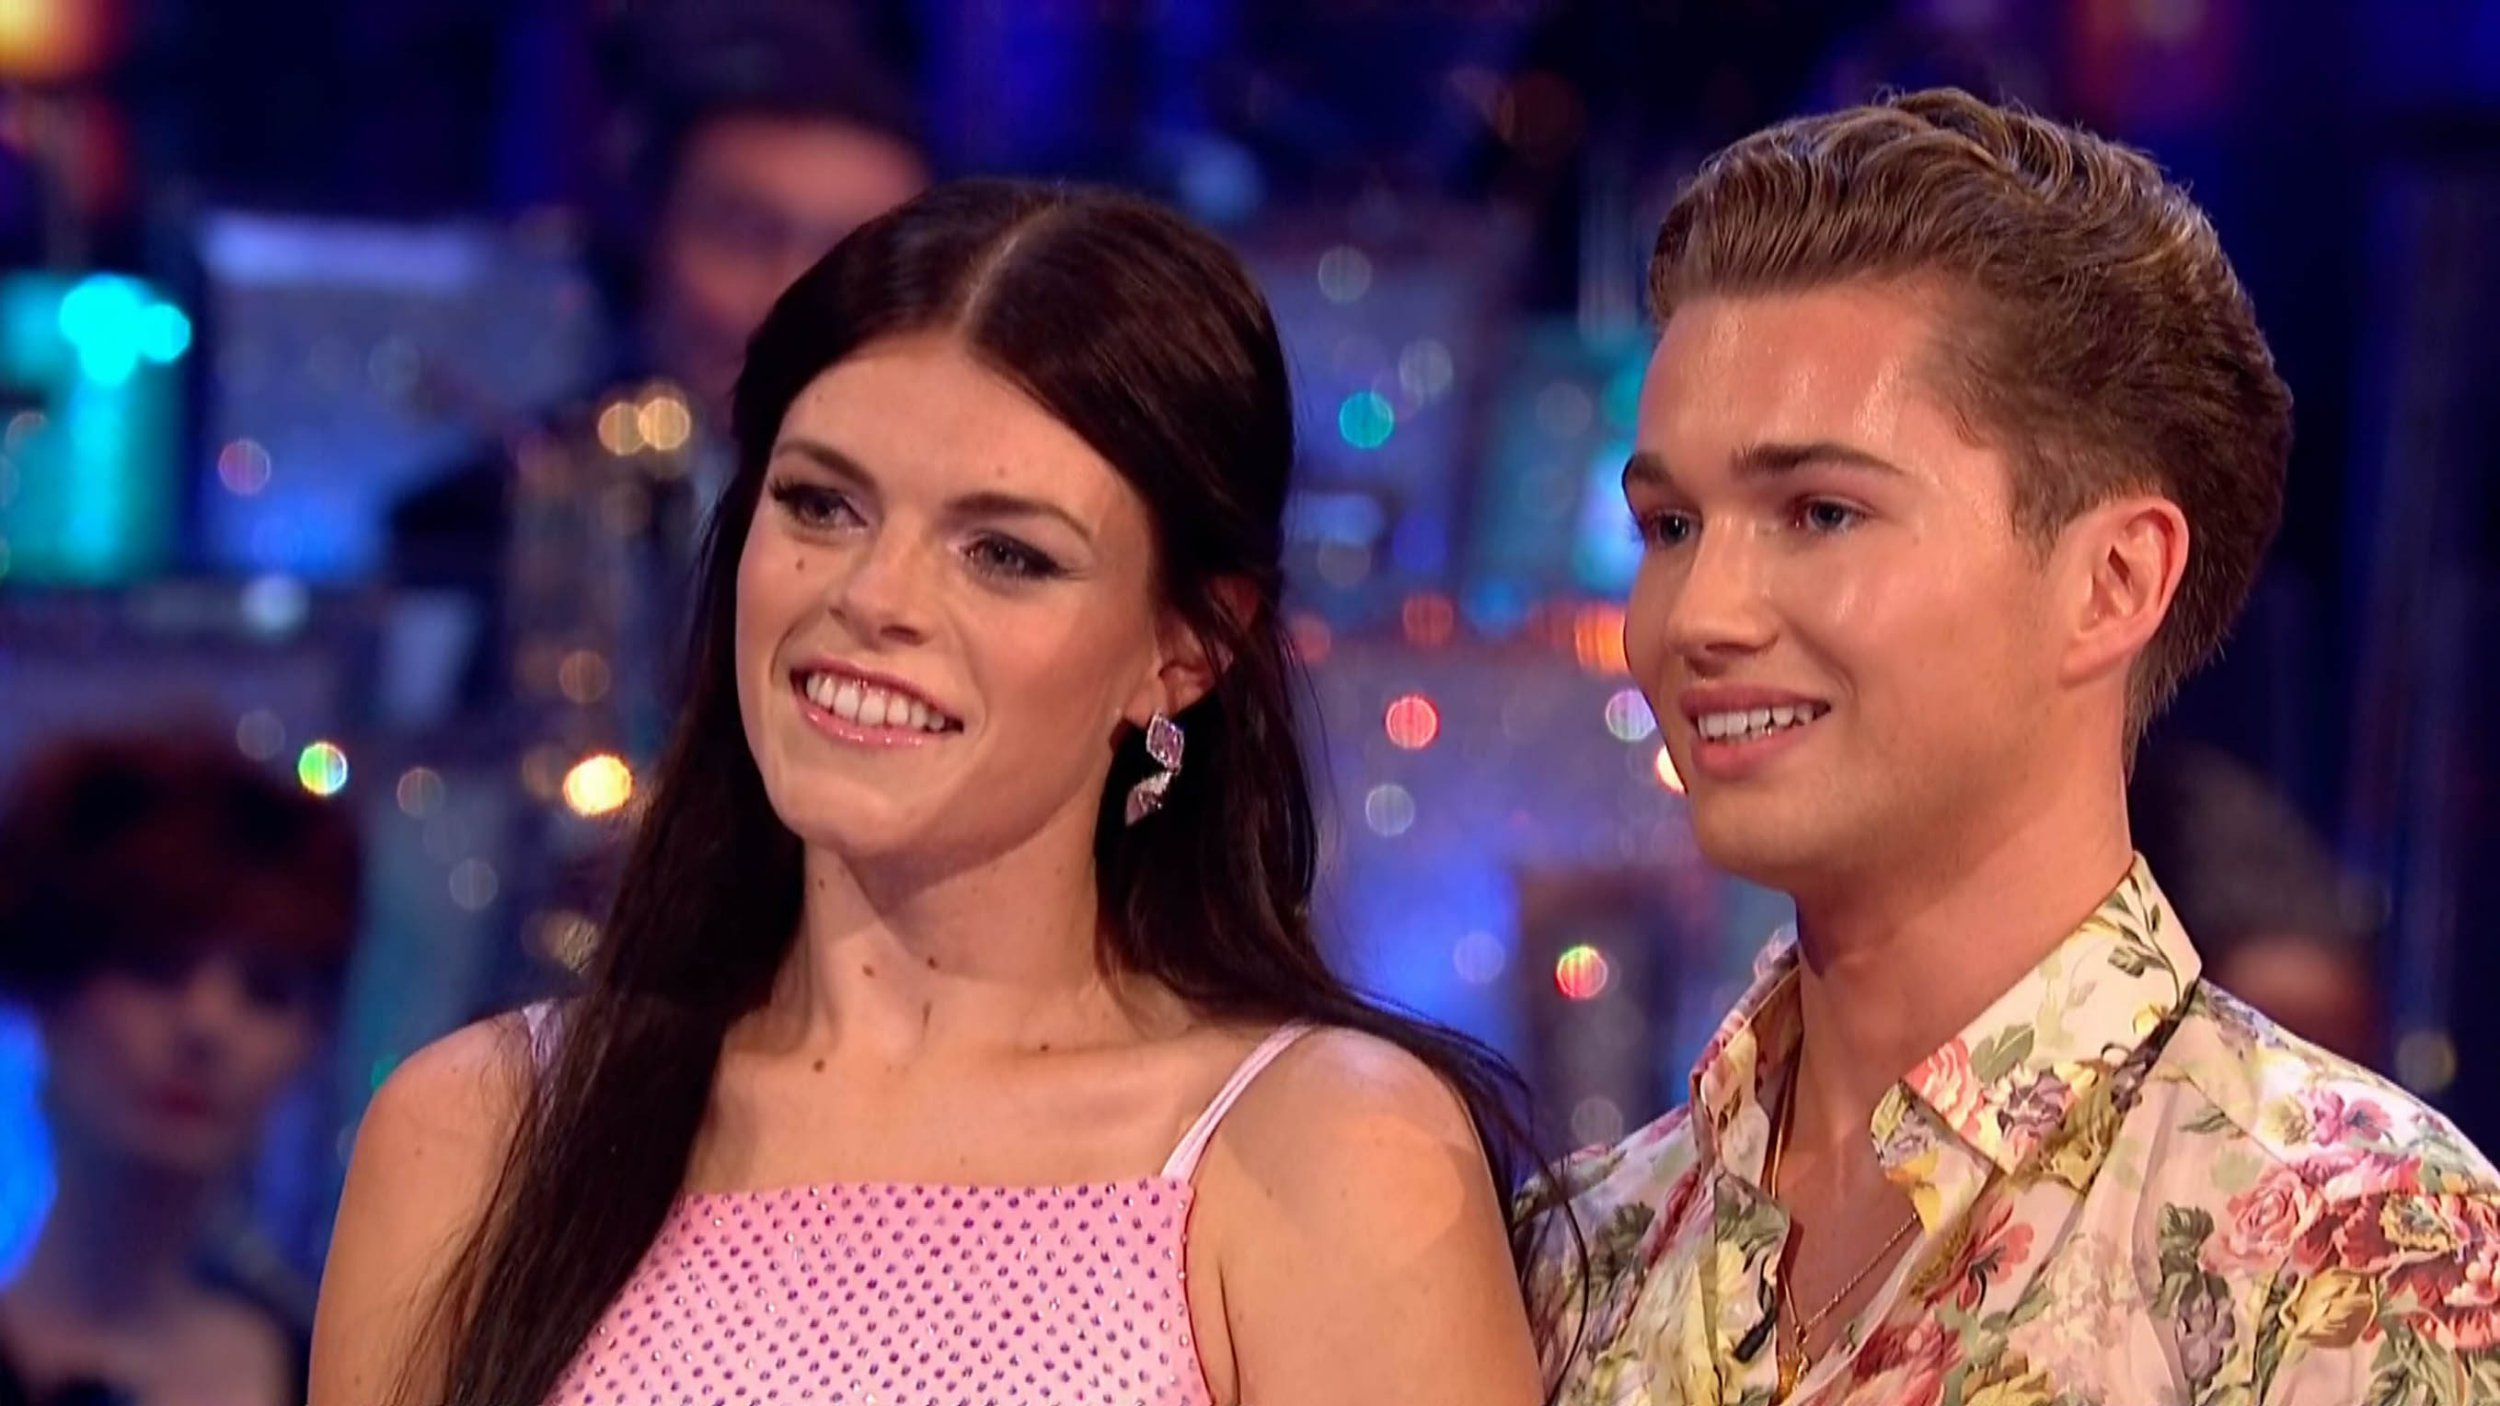 "22-9-2018 TV show ""Strictly Come Dancing"" (series 16) Week 1 Pictured: Lauren Steadman AJ Pritchard PLANET PHOTOS www.planetphotos.co.uk info@planetphotos.co.uk +44 (0)20 8883 1438"